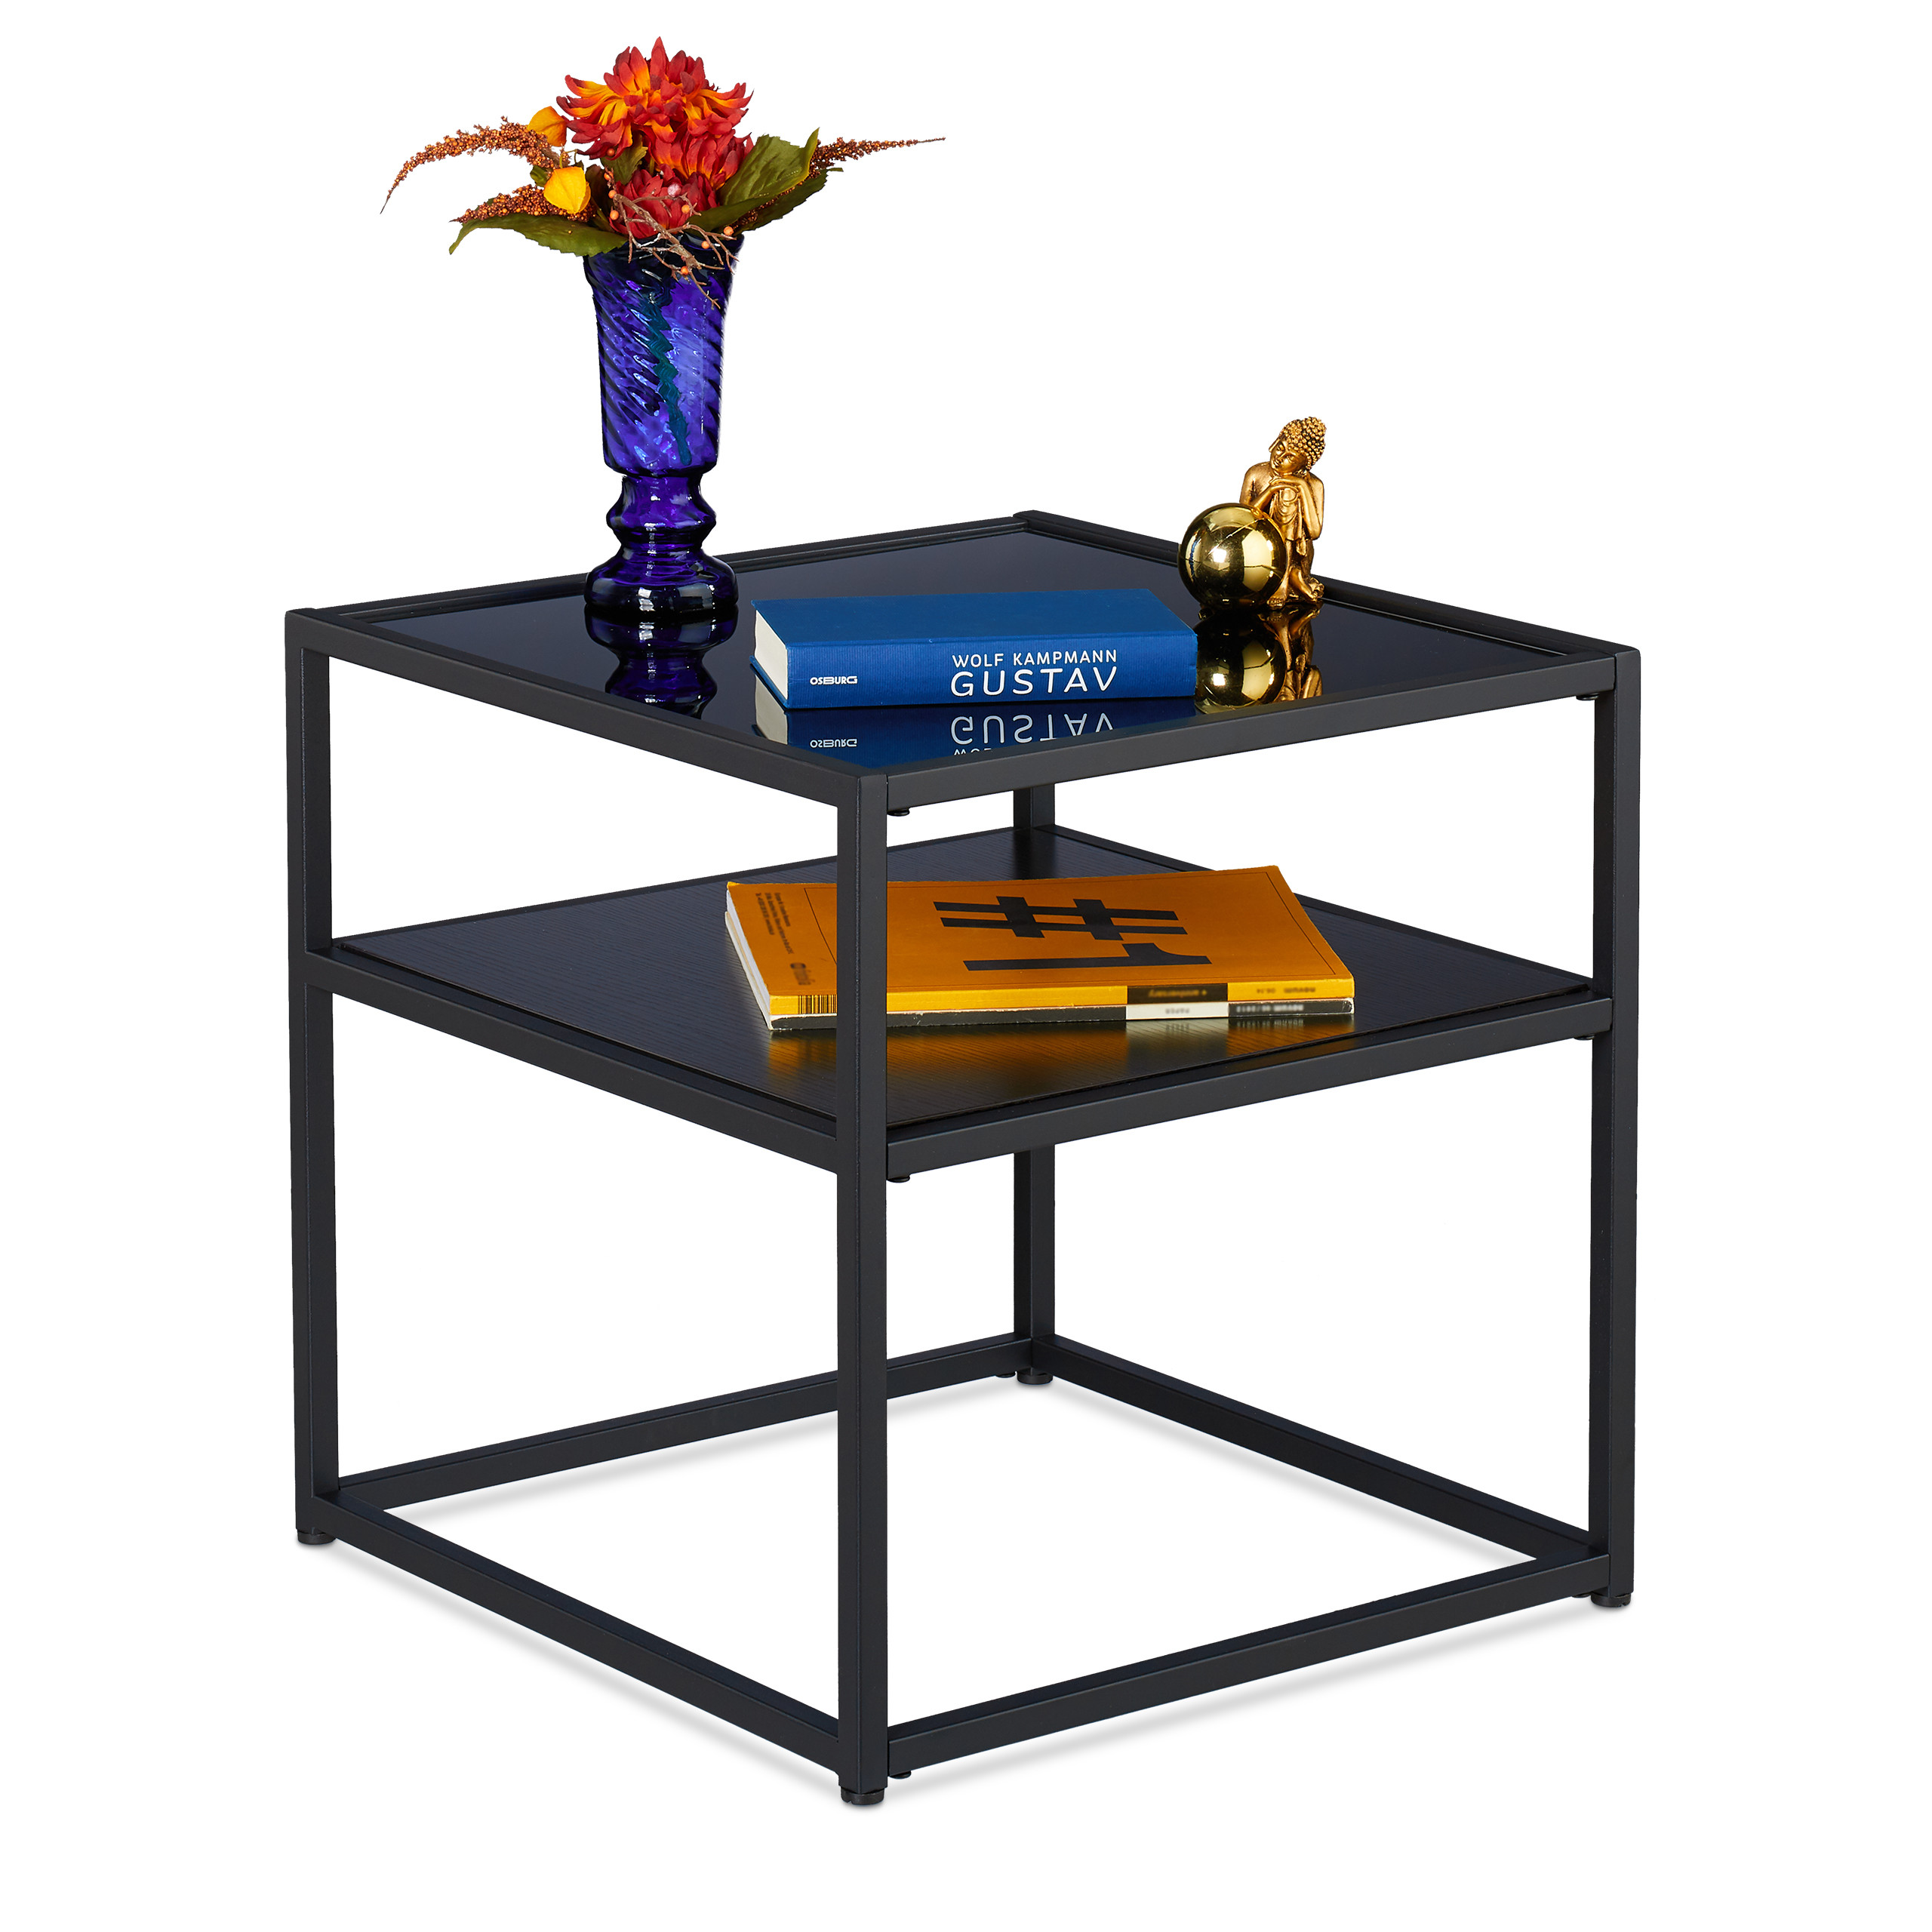 Couchtisch 50x50x50 Side Table Lounge Table Coffee Table Metal Table Black